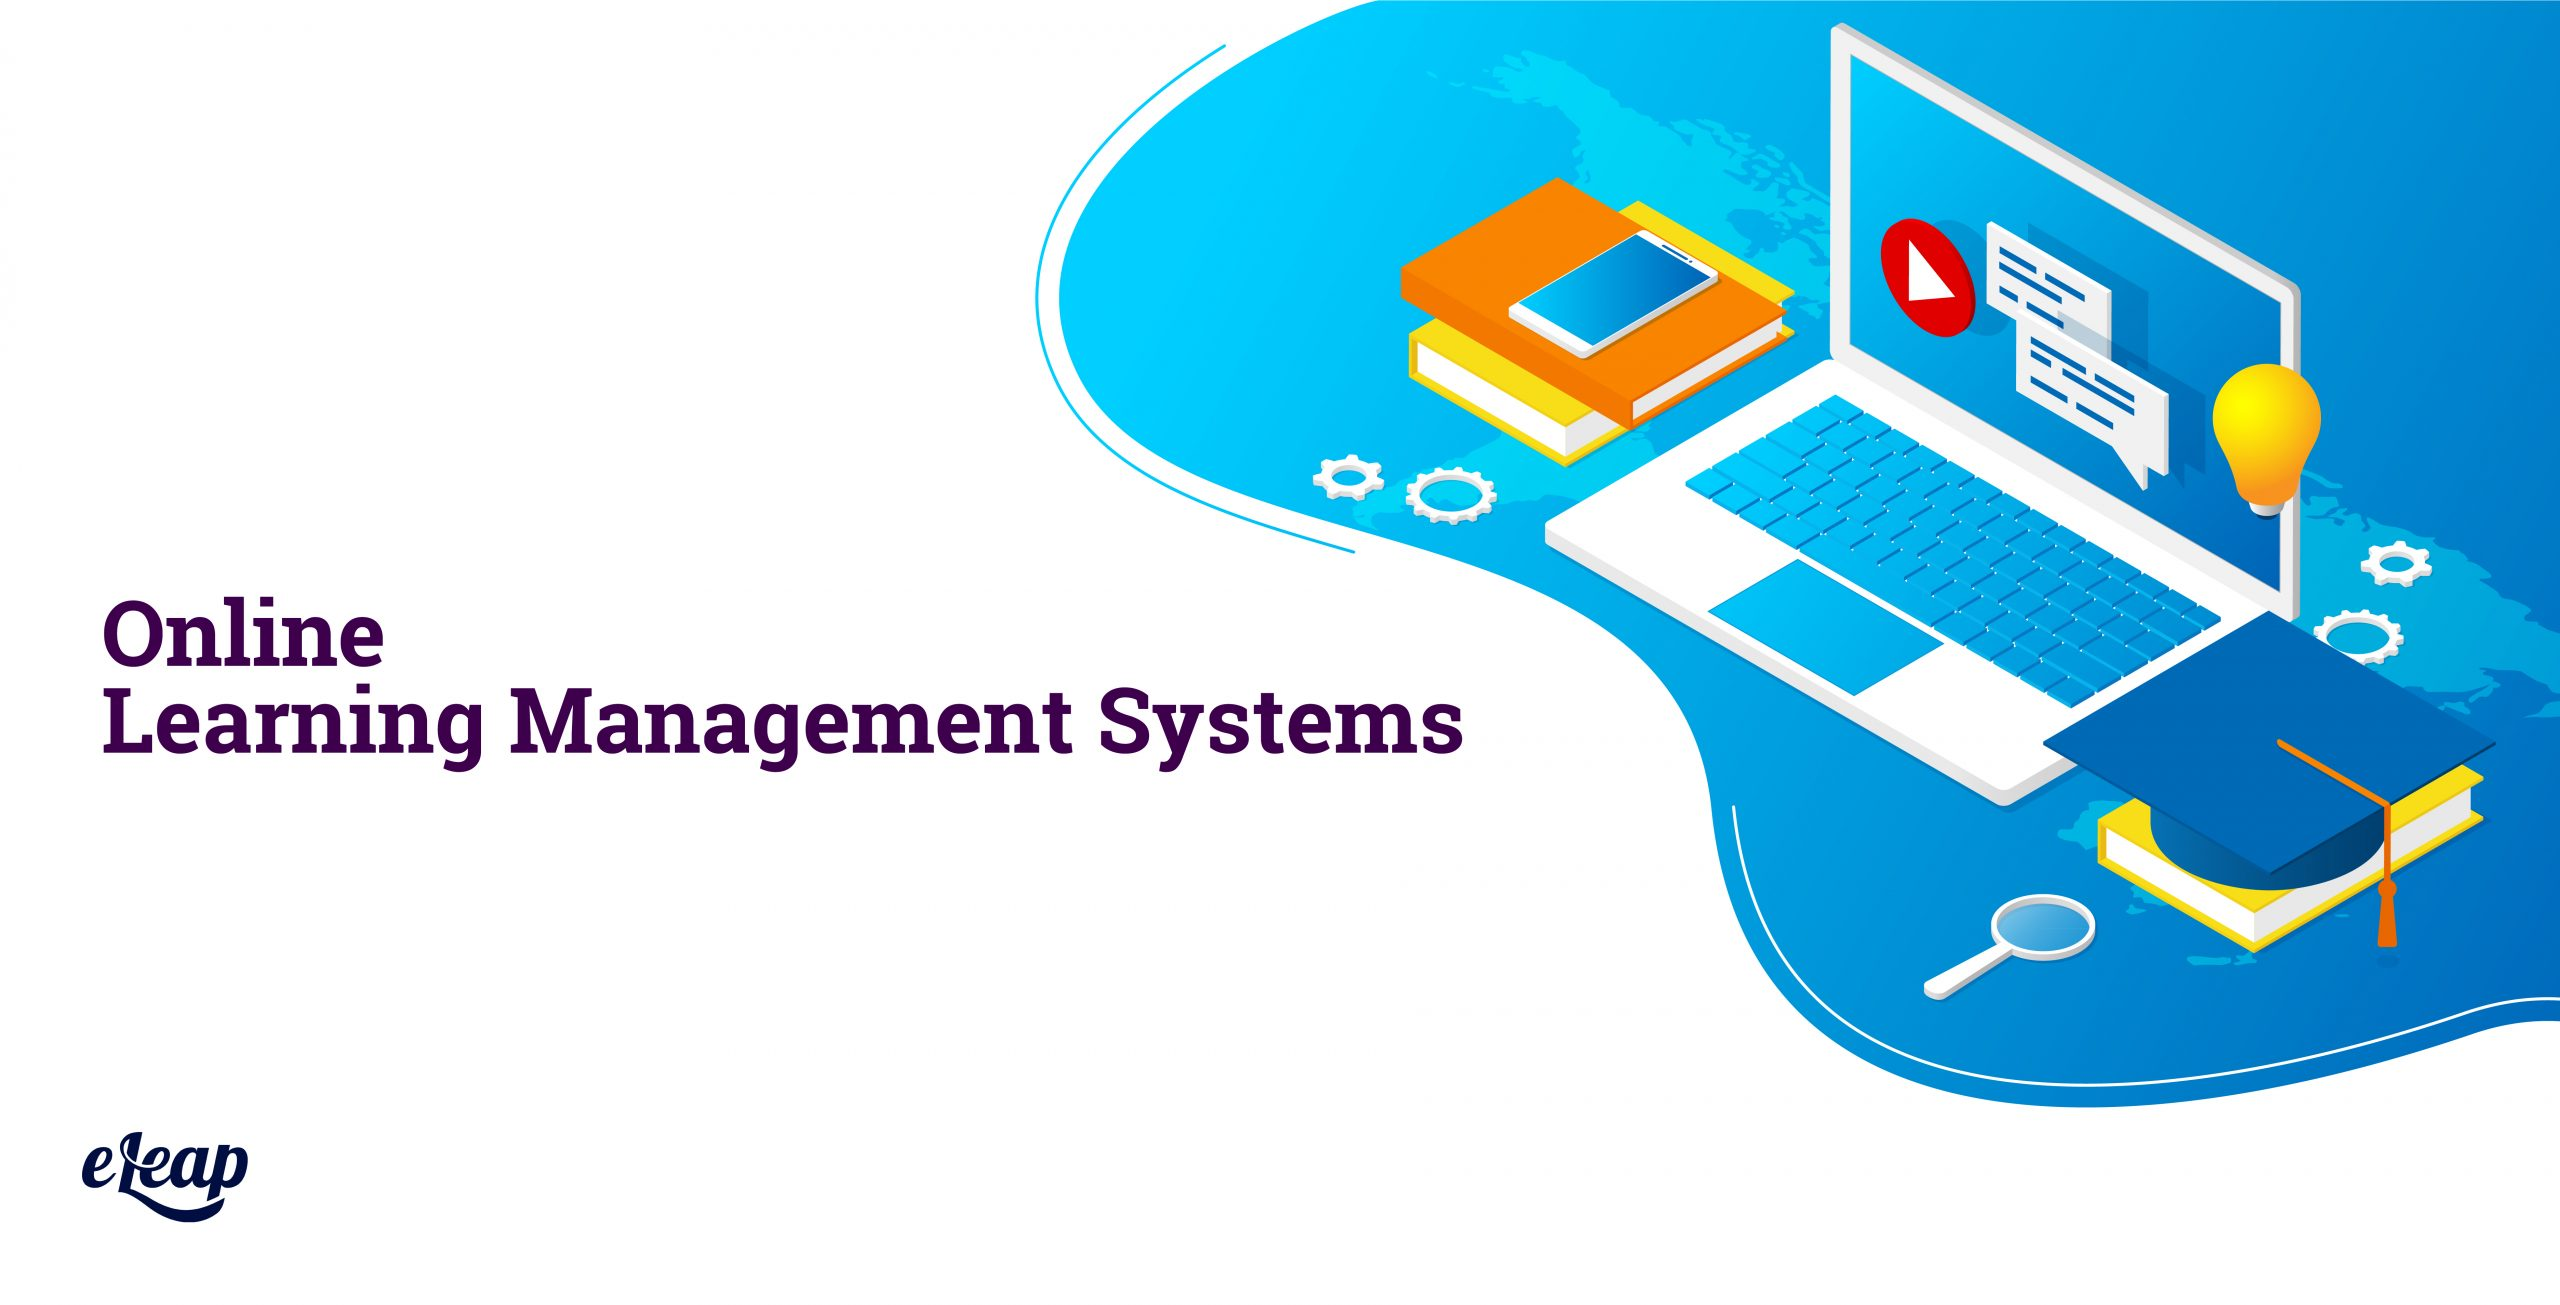 Online Learning Management Systems